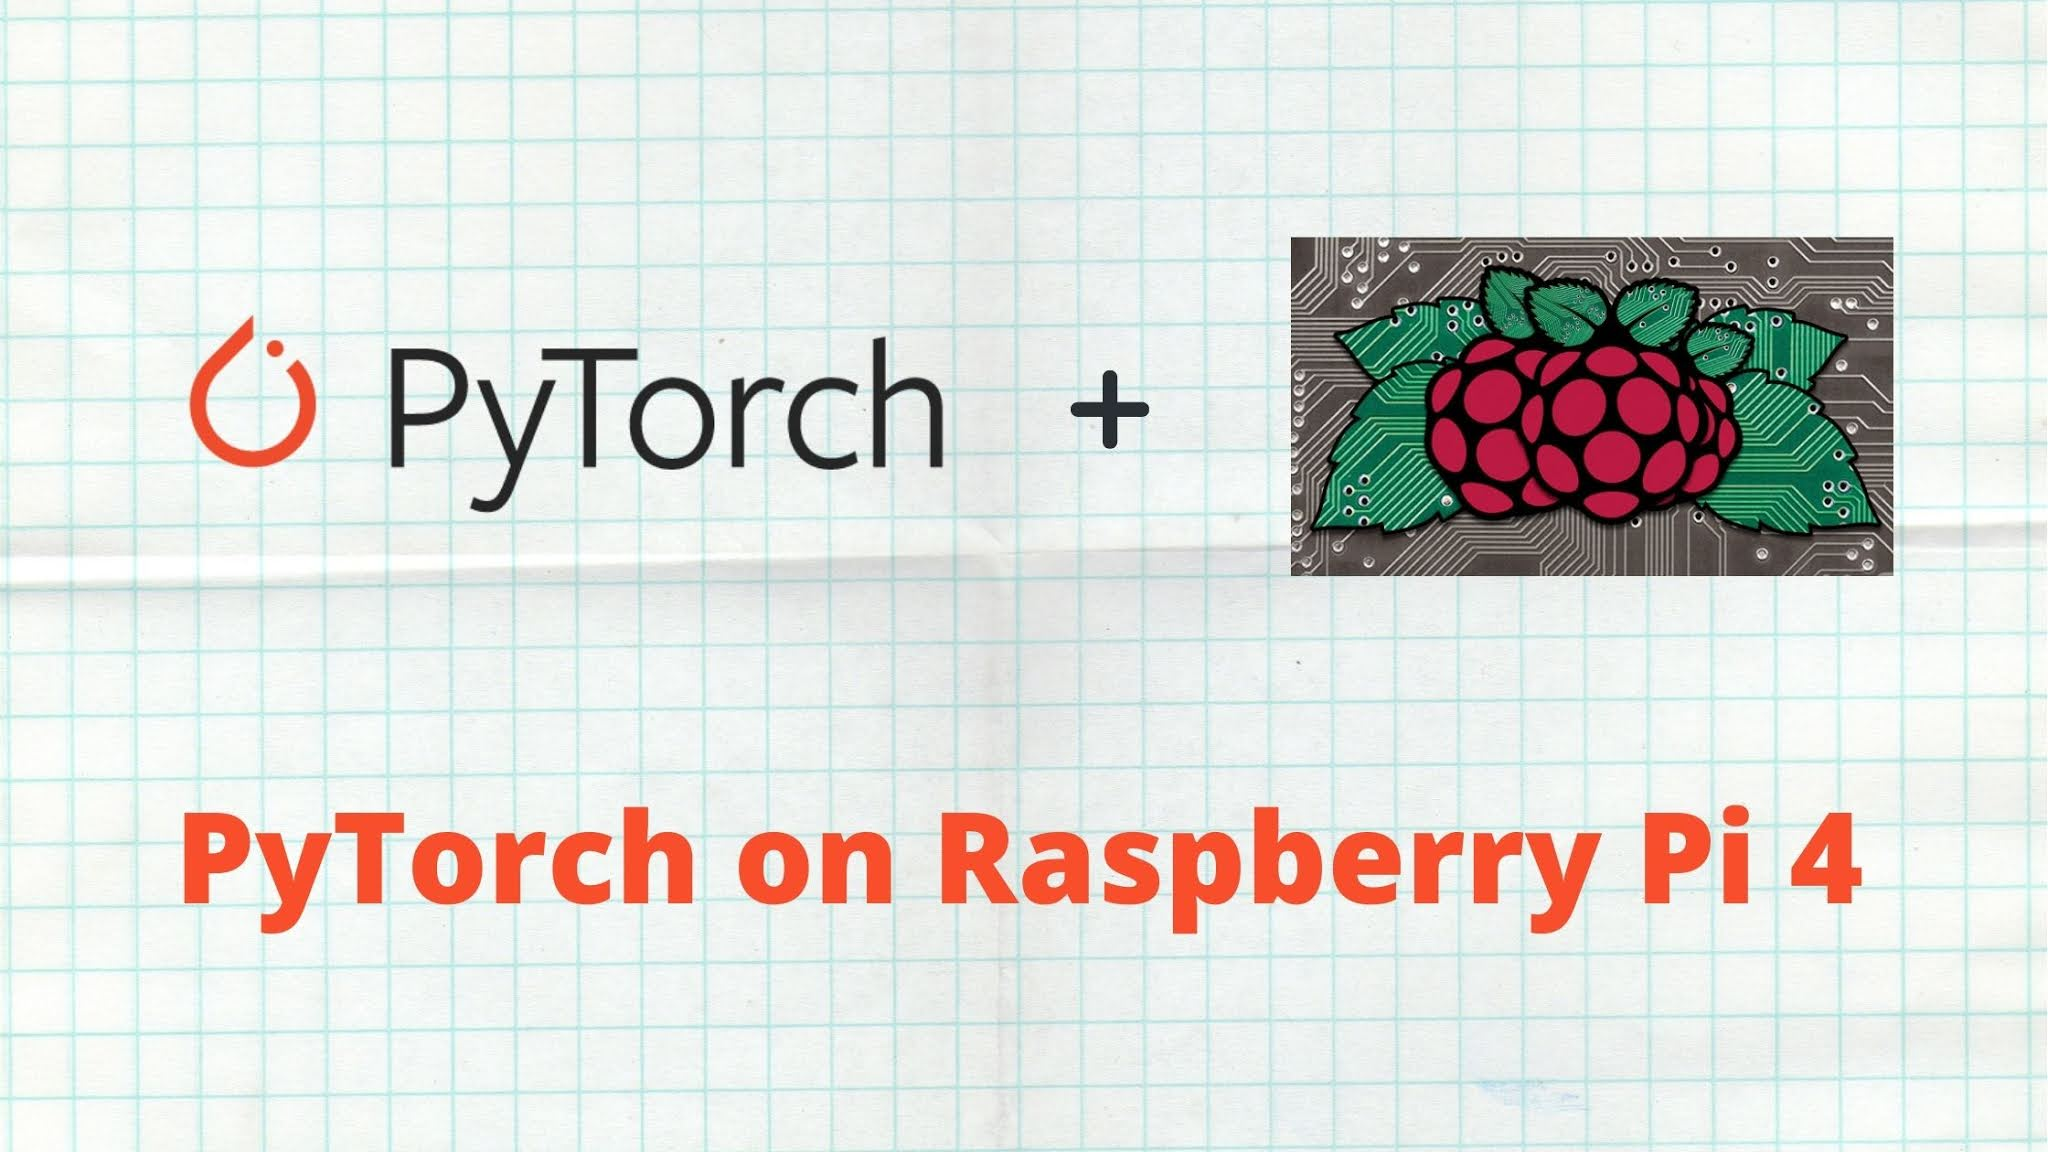 Install PyTorch on Raspberry Pi 4